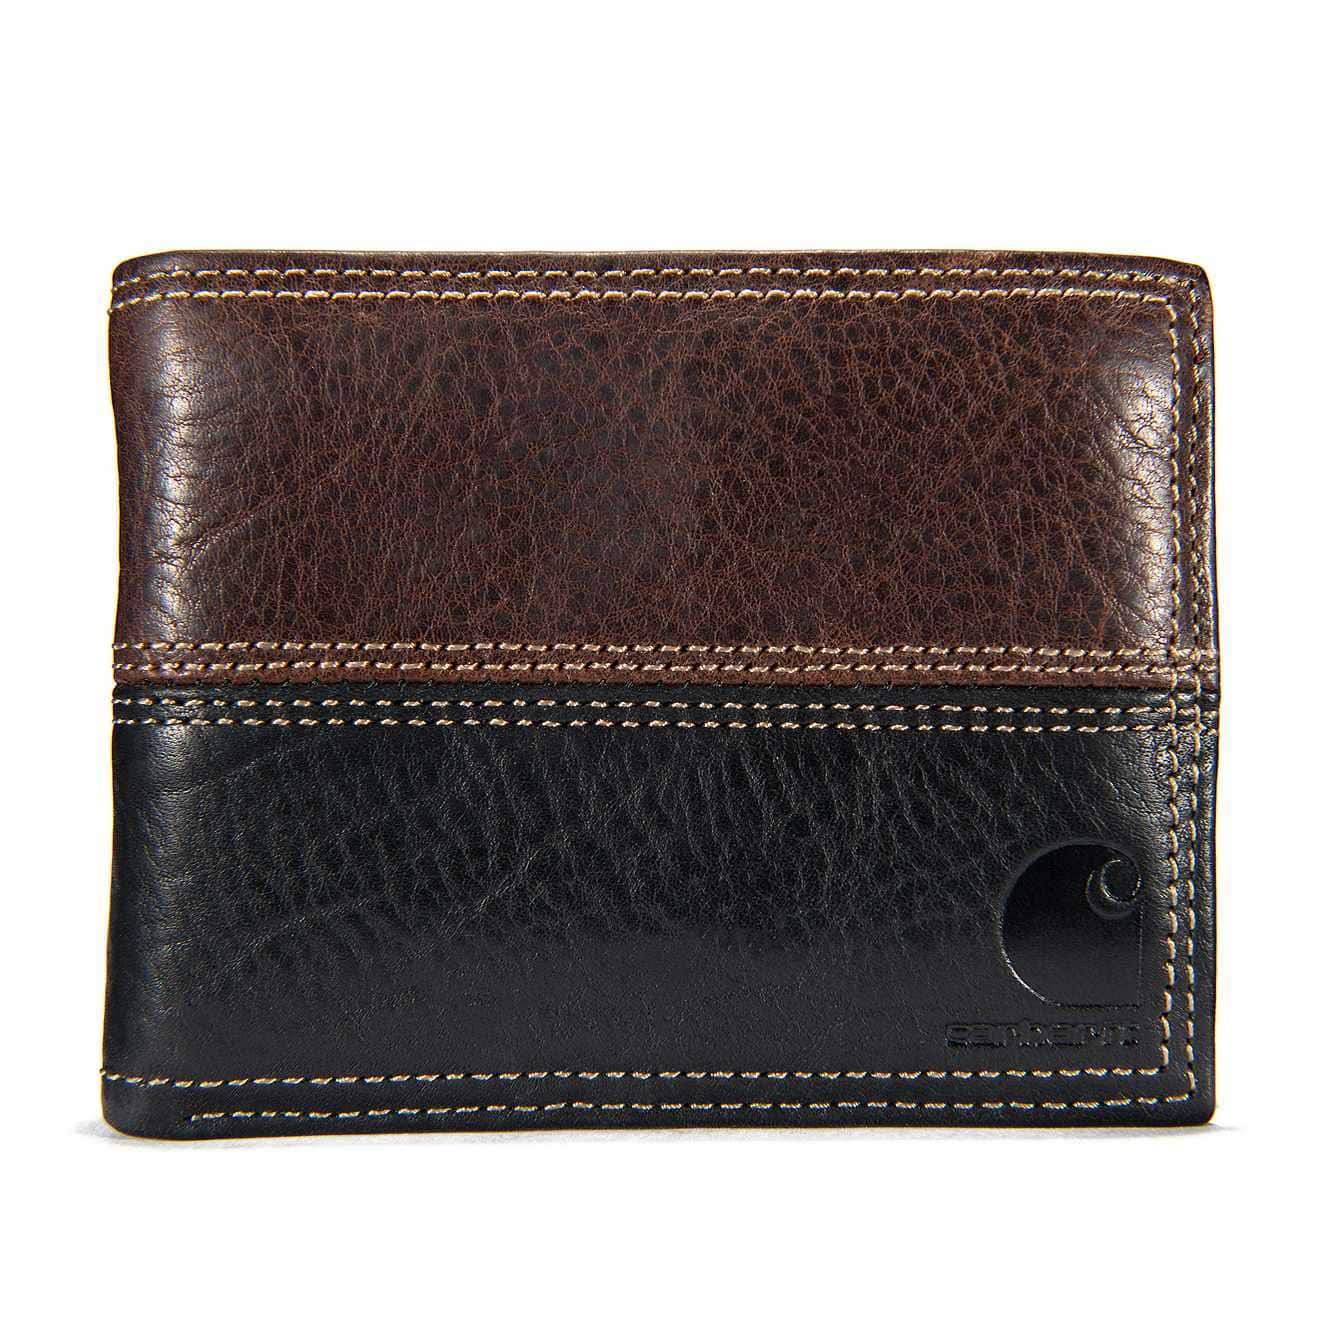 Picture of Canvas Passcase Wallet in Brown and Black Leather